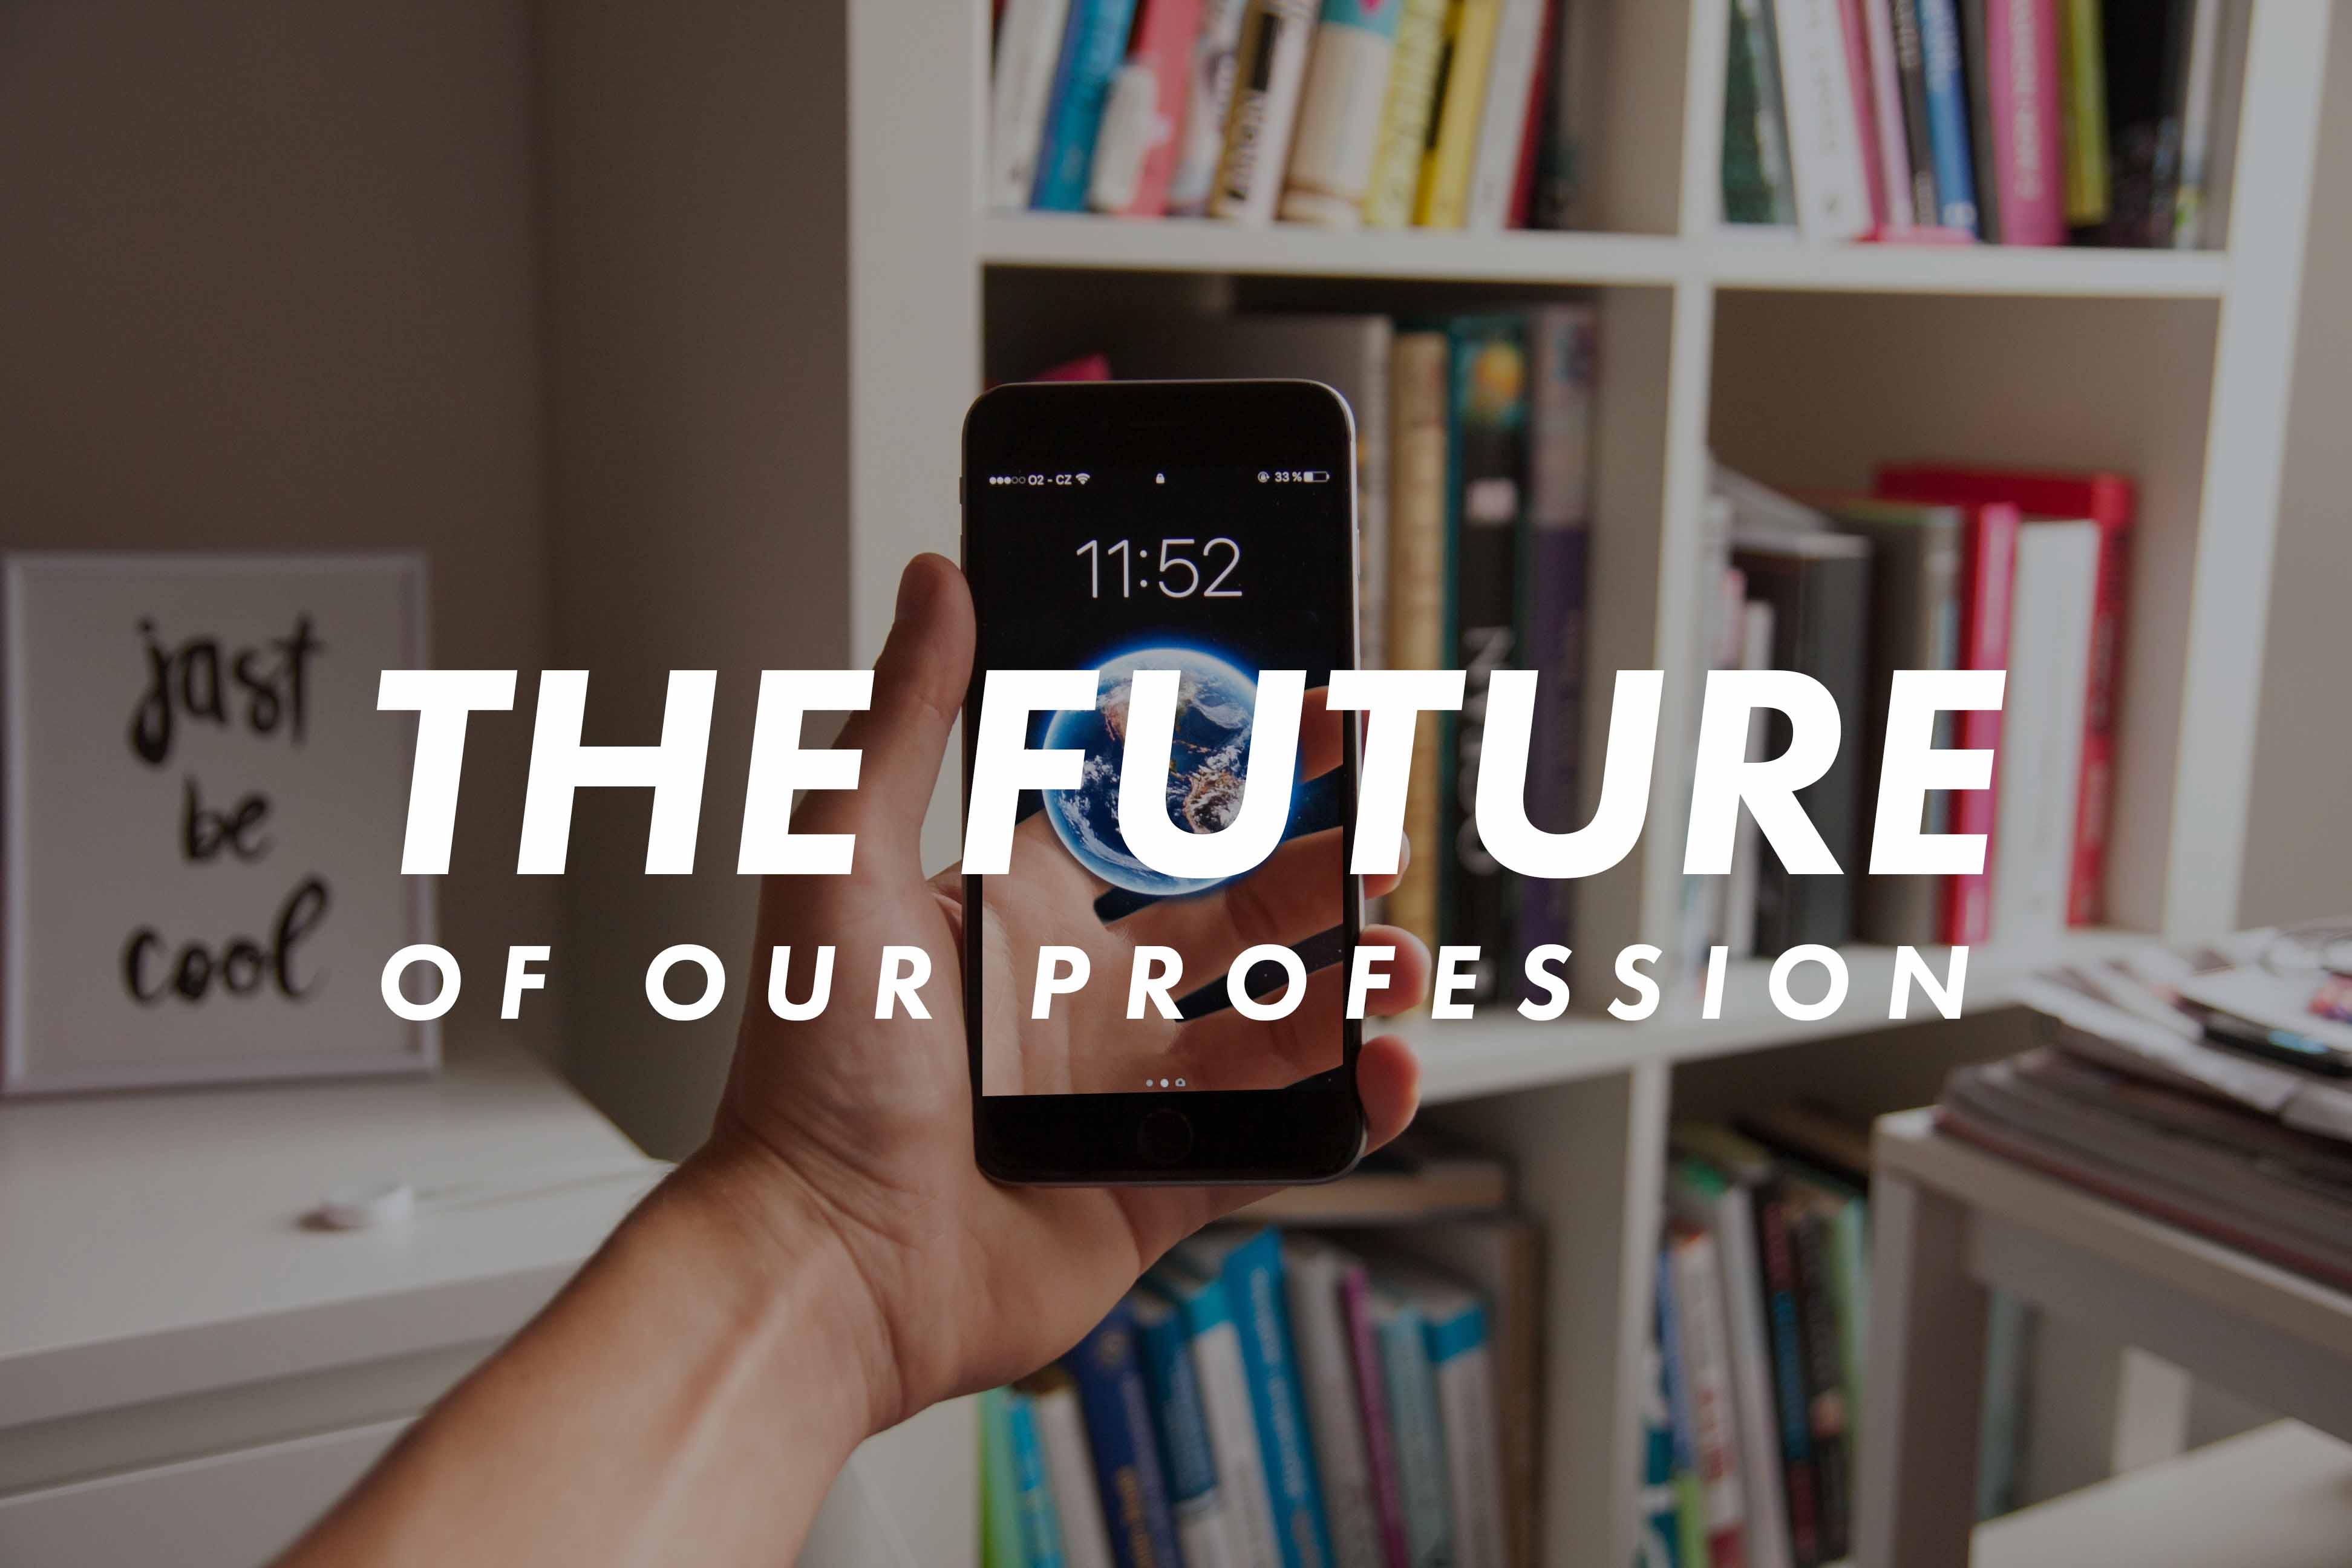 The Future of Our Profession